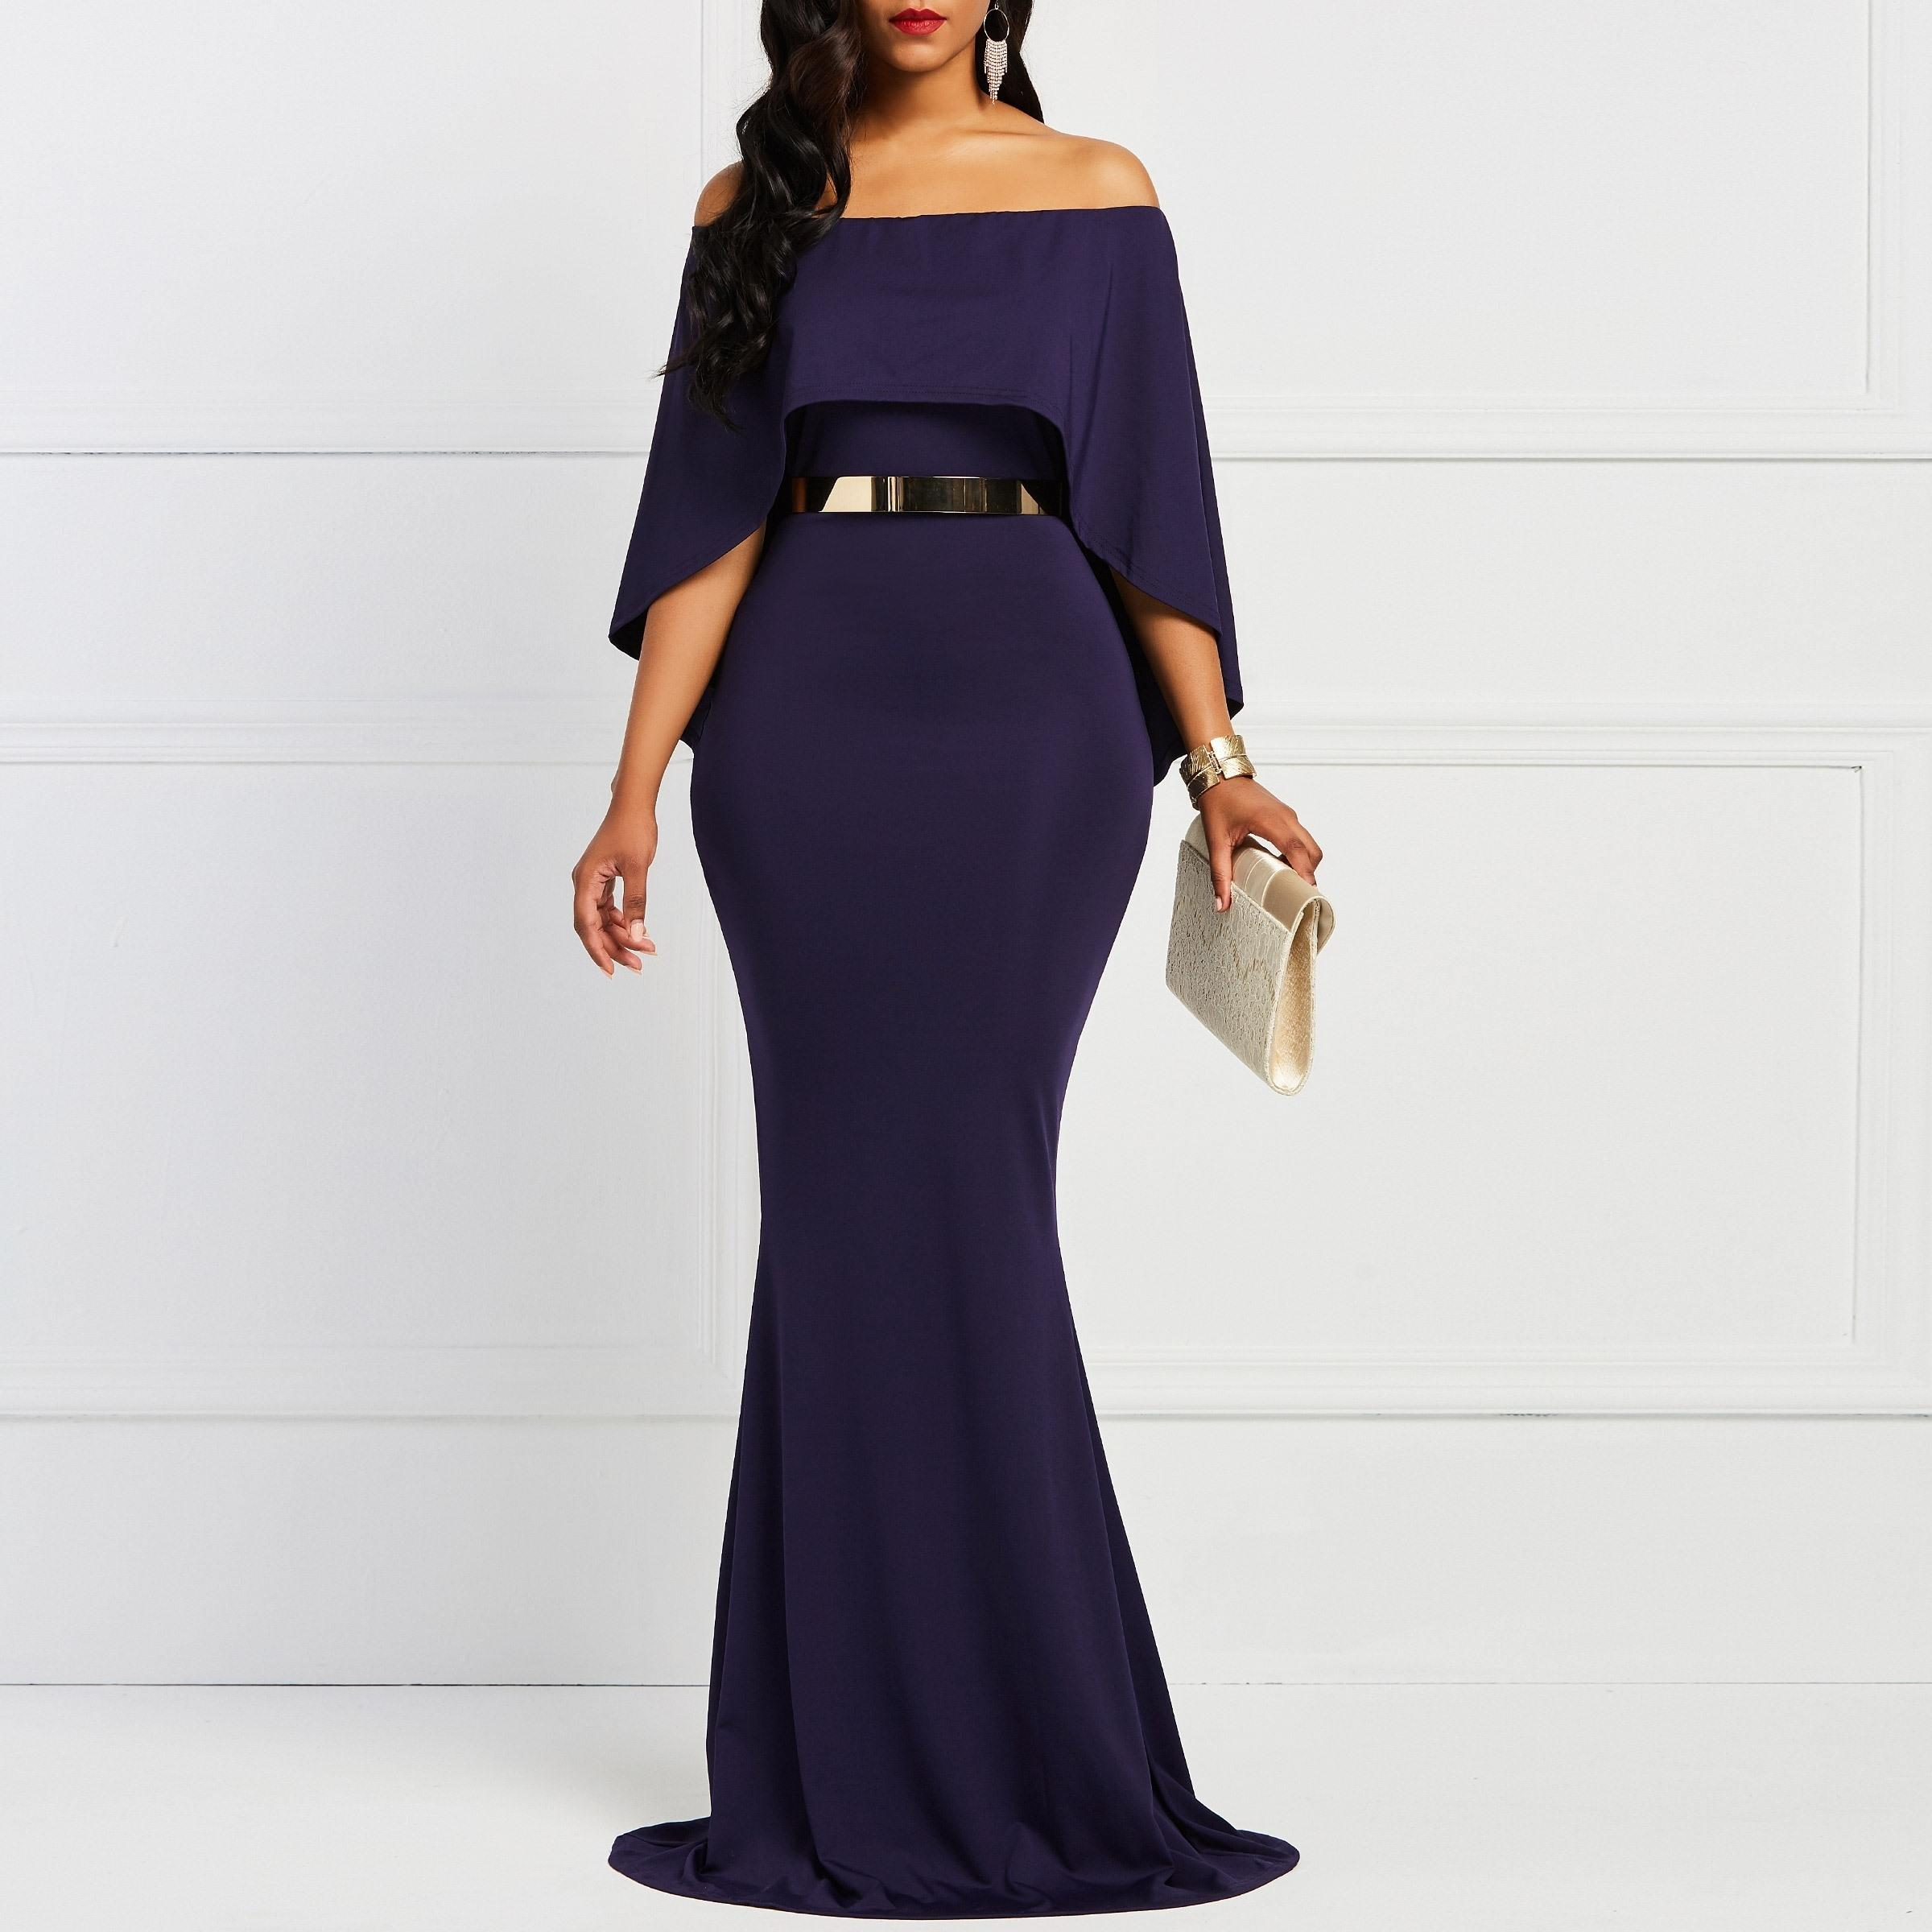 Sleeve Bodycon Slash Neck Women's Dress Navy Elegany Trumpet Evening Party Christmas Dinner Floor-length Maxi Dresses